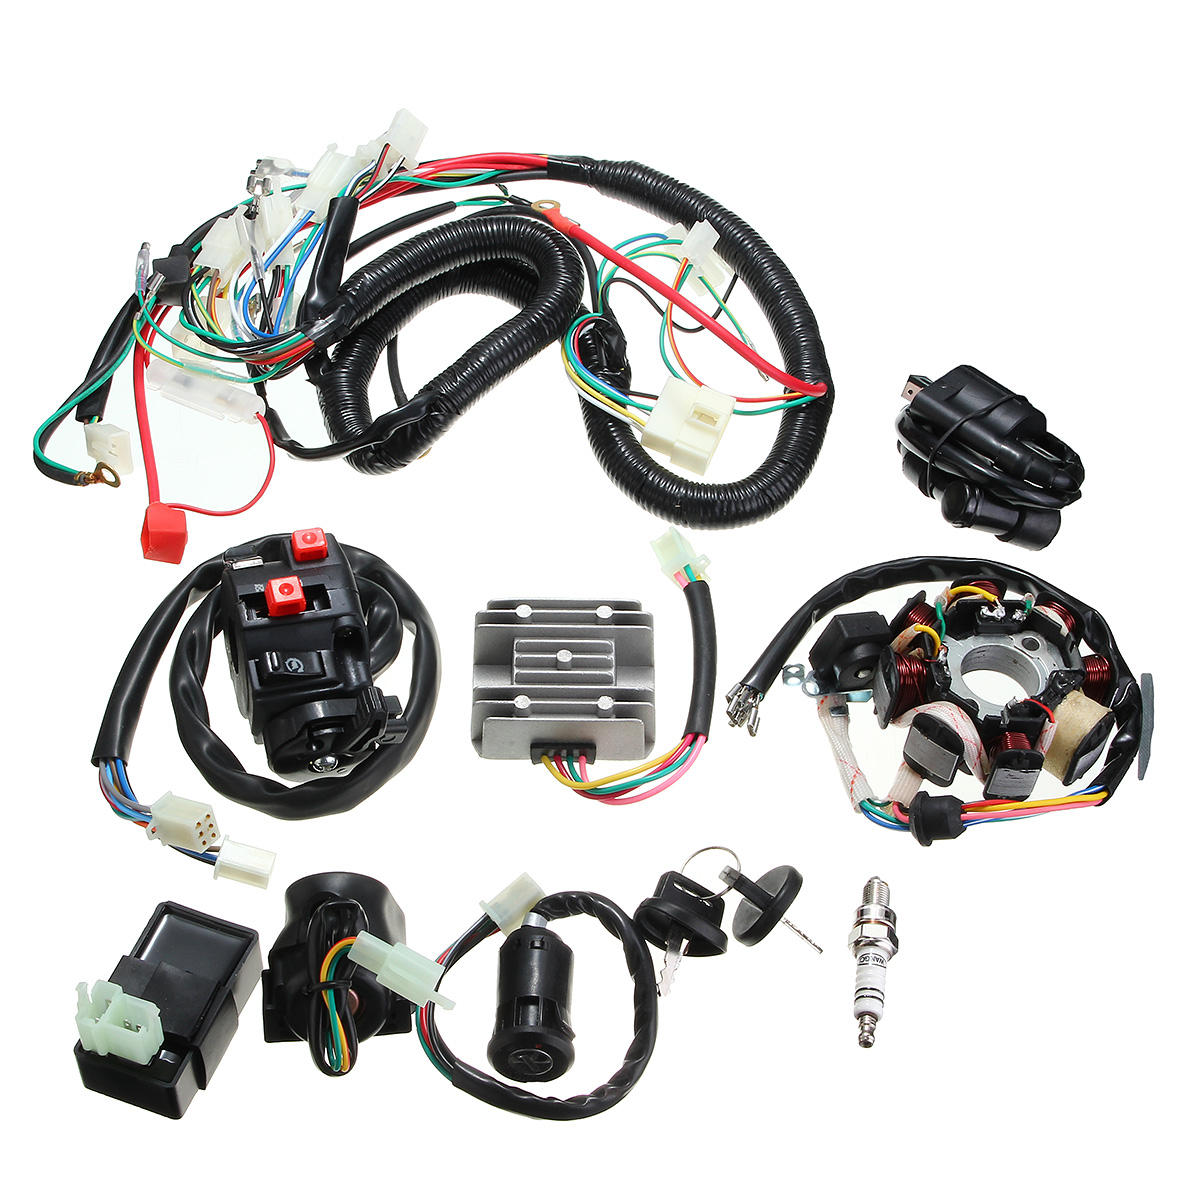 hight resolution of 125cc 150cc 200cc 250cc quad electric cdi coil wire harness stator assembly wiring set cod